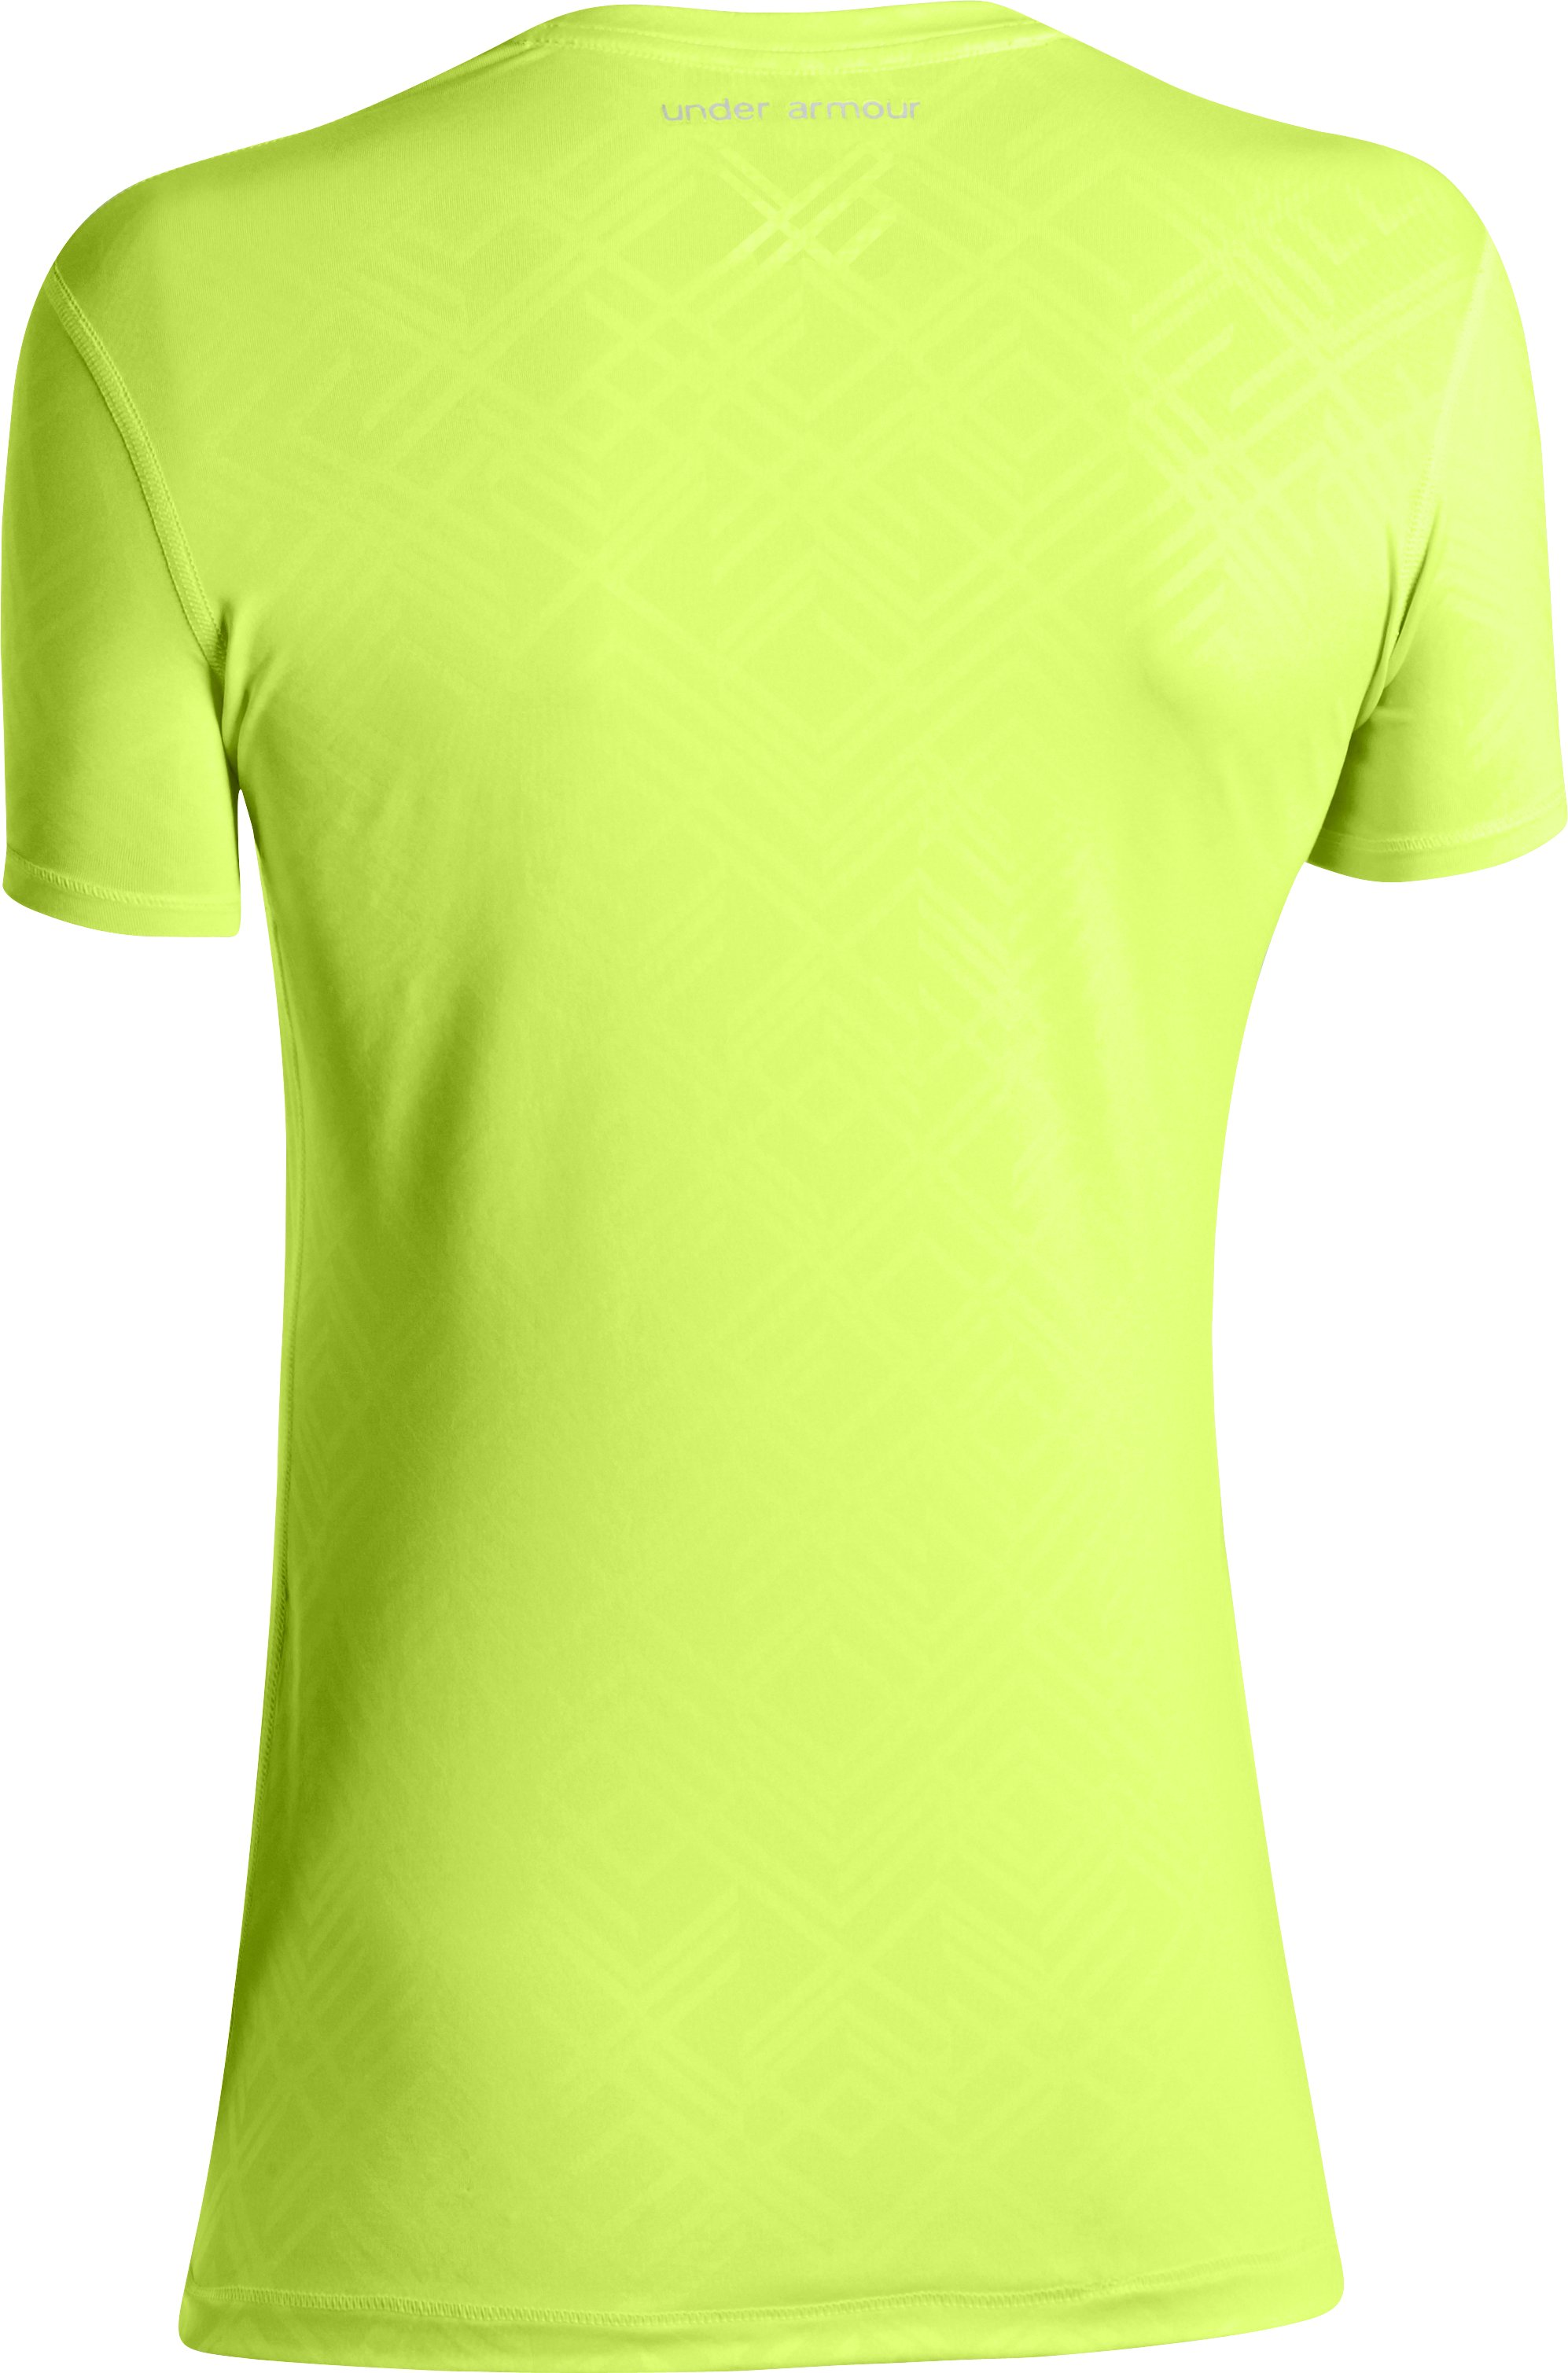 Women's HeatGear® Sonic Printed Short Sleeve, X-Ray, undefined